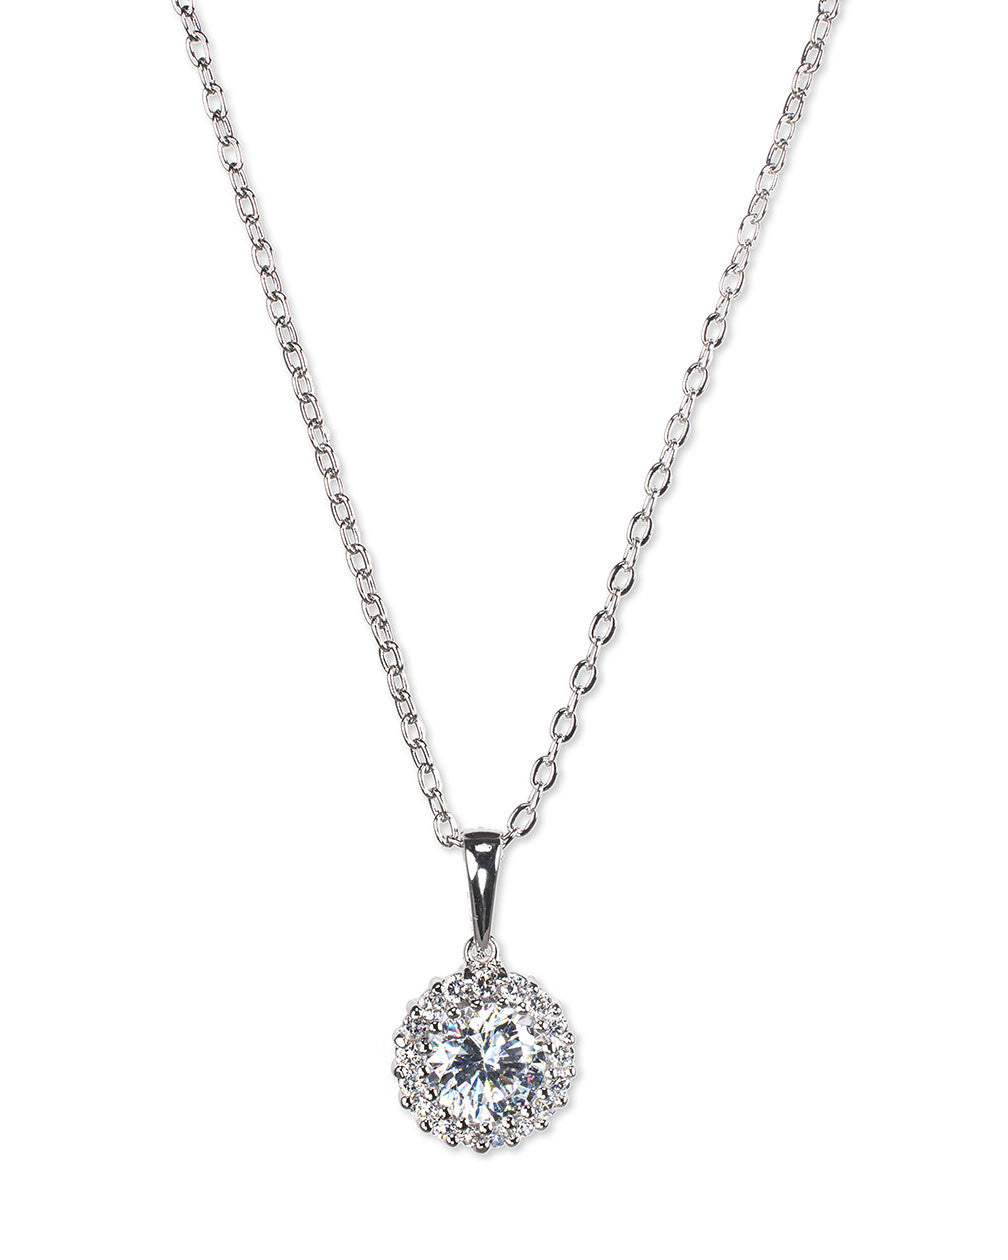 Round Halo Pendant Necklace